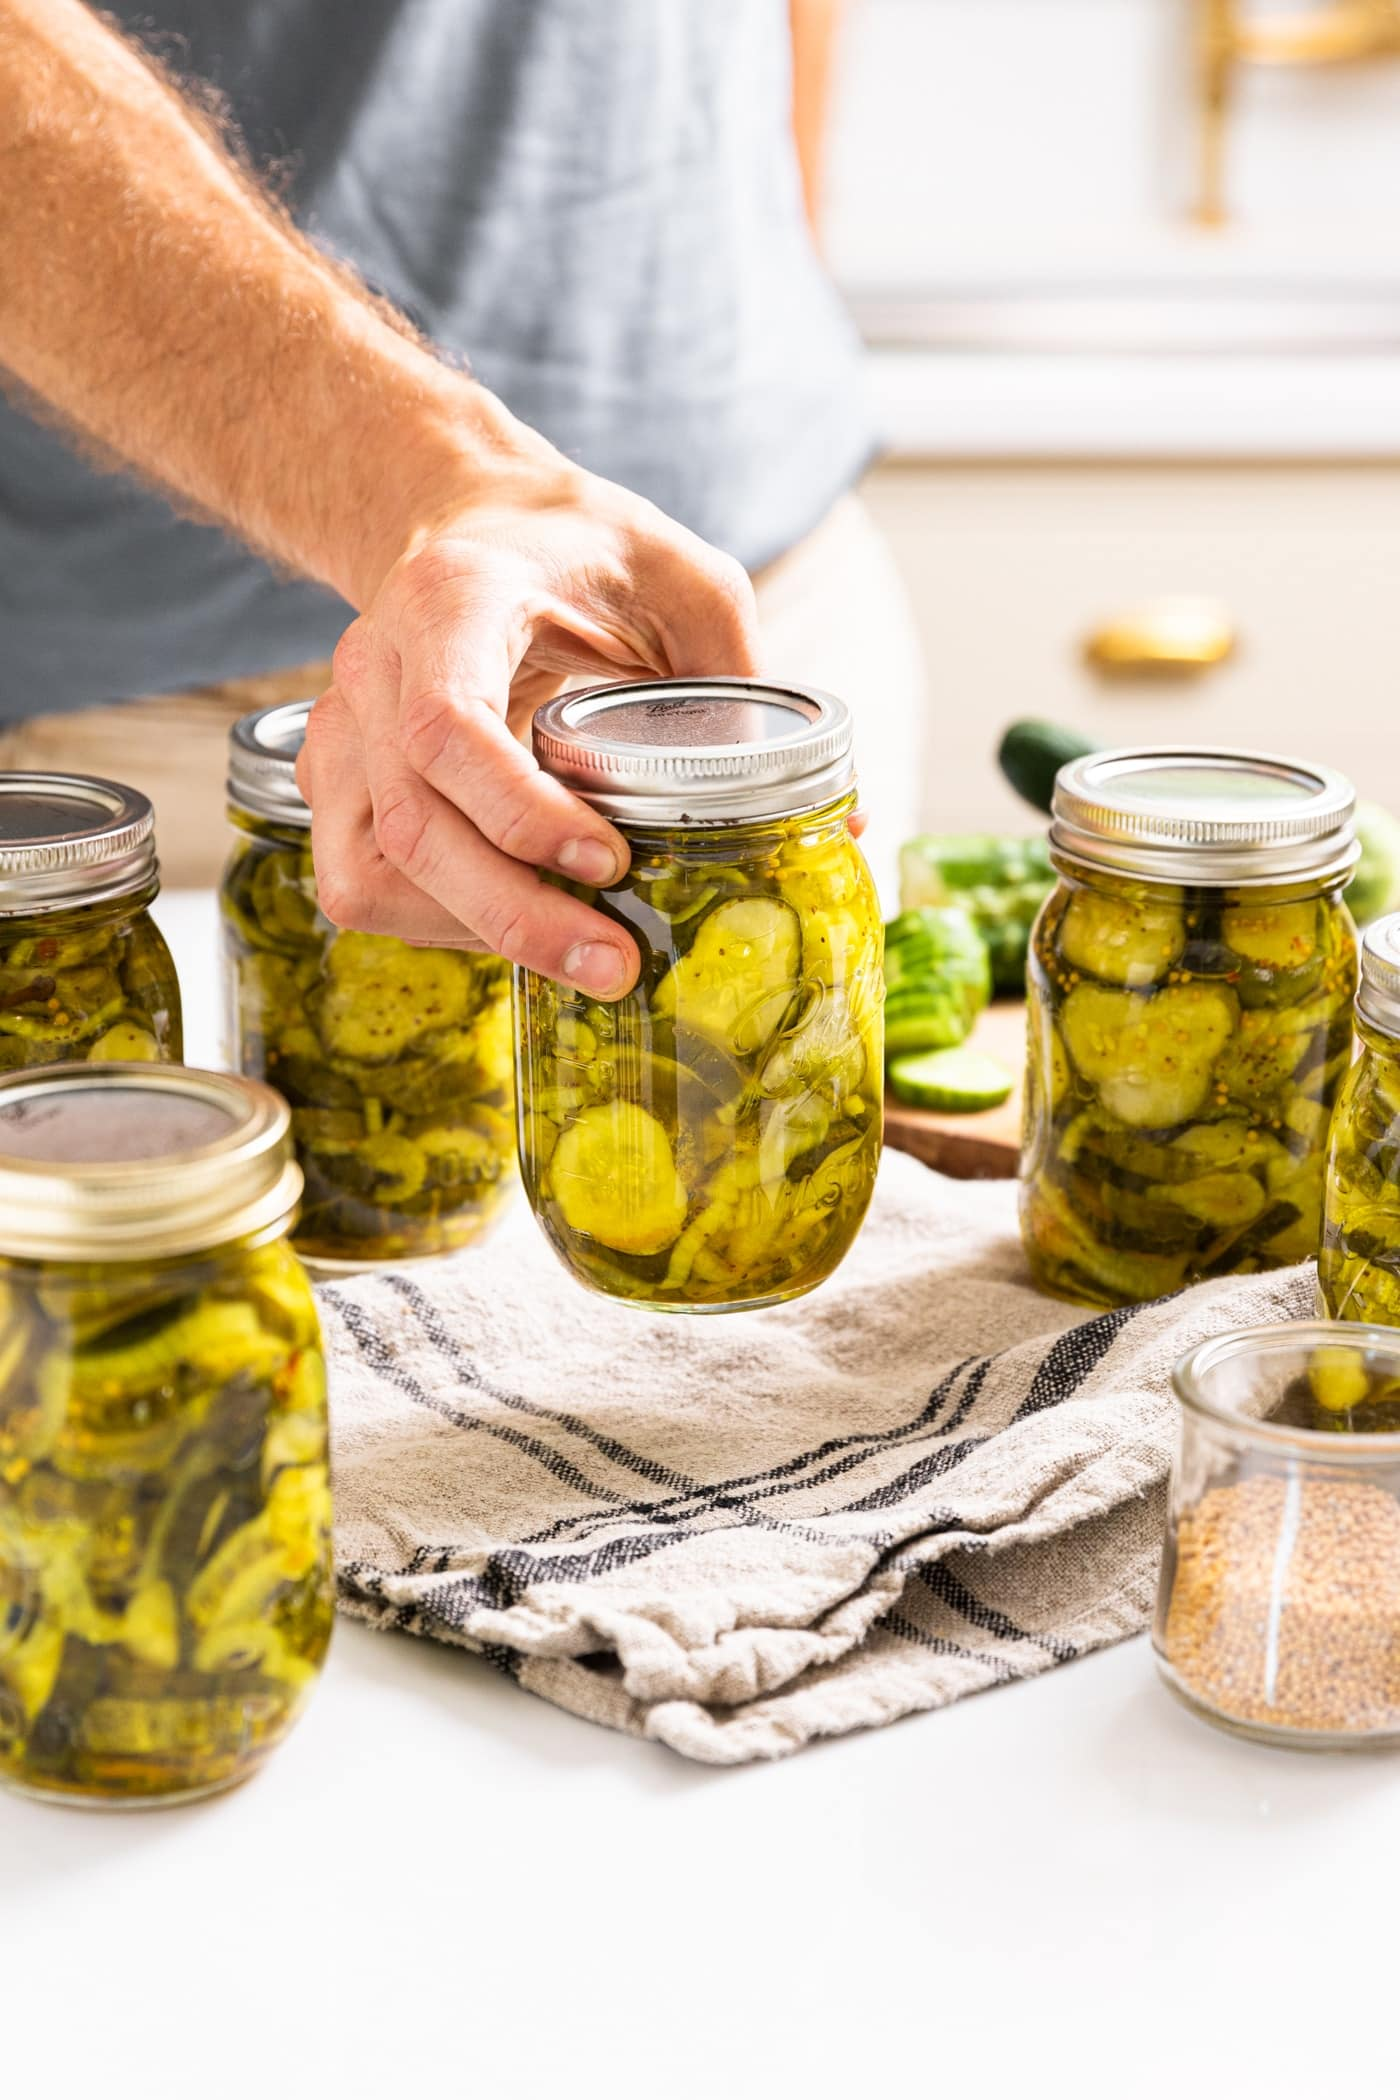 Hand holding glass jar filled with bread and butter pickles in the action of setting jar down on cloth with other glass jars all around